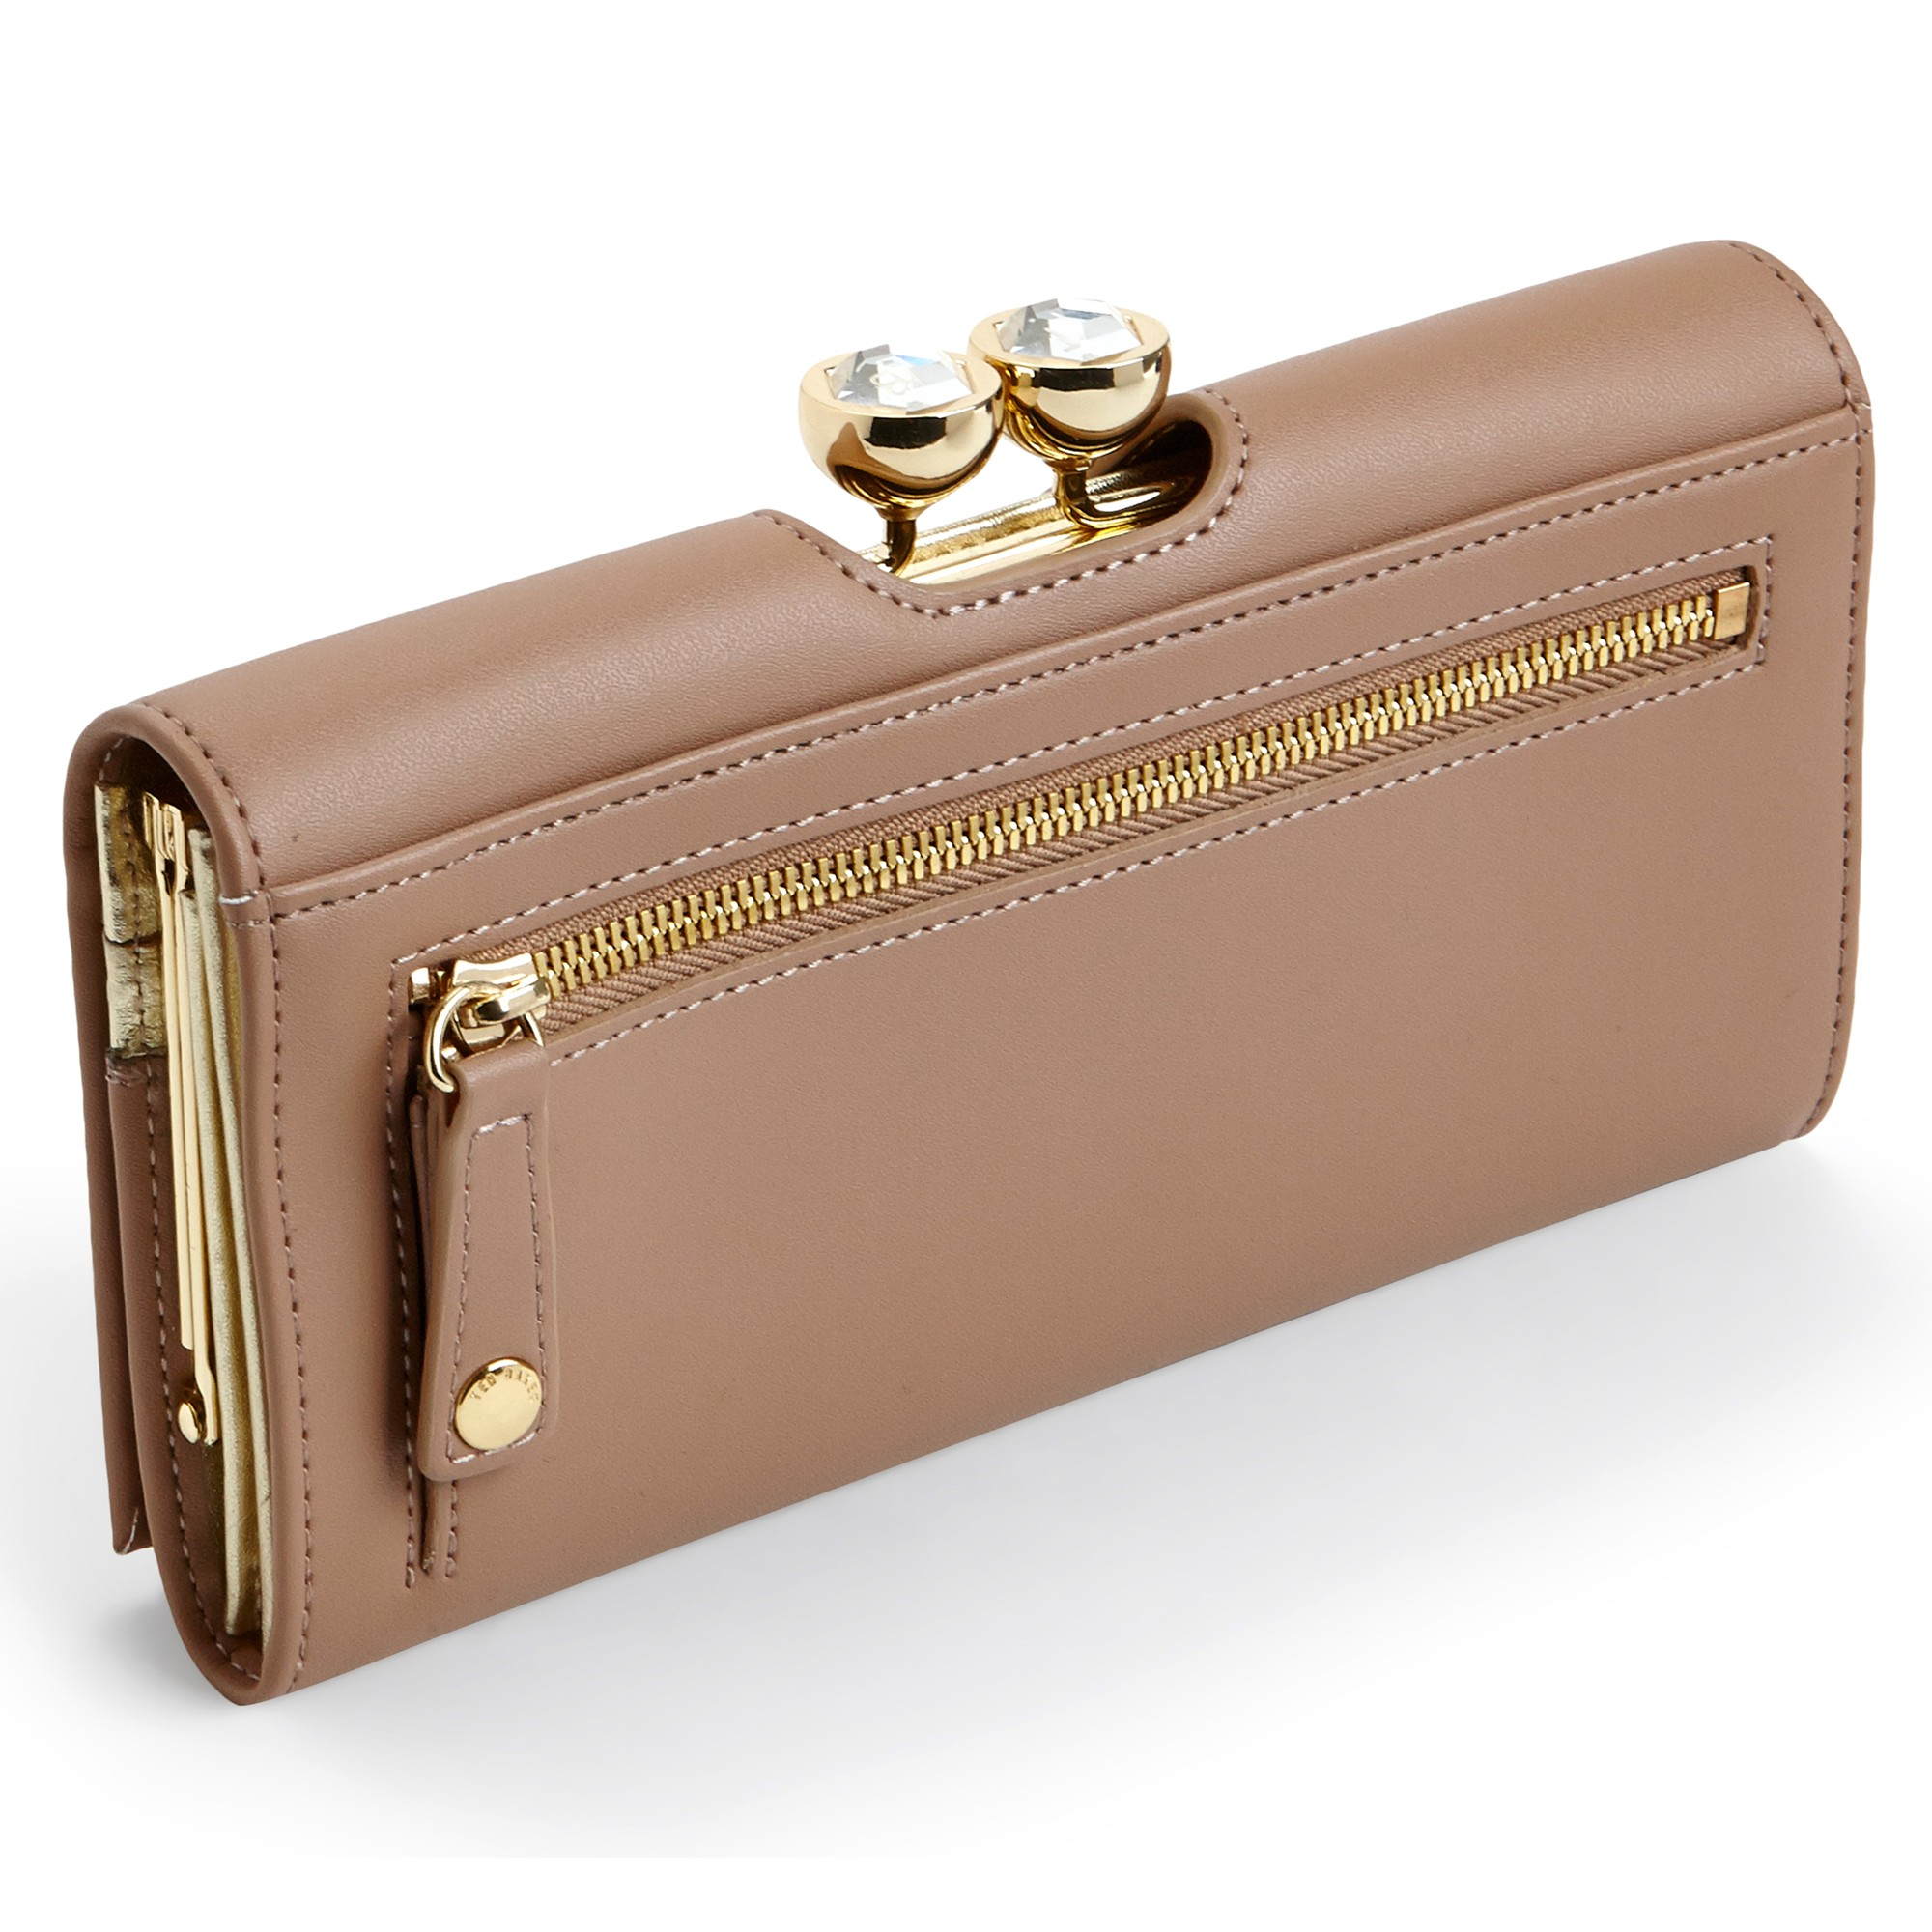 734f2dc03a8 Ted Baker Flapover Purse - Best Purse Image Ccdbb.Org